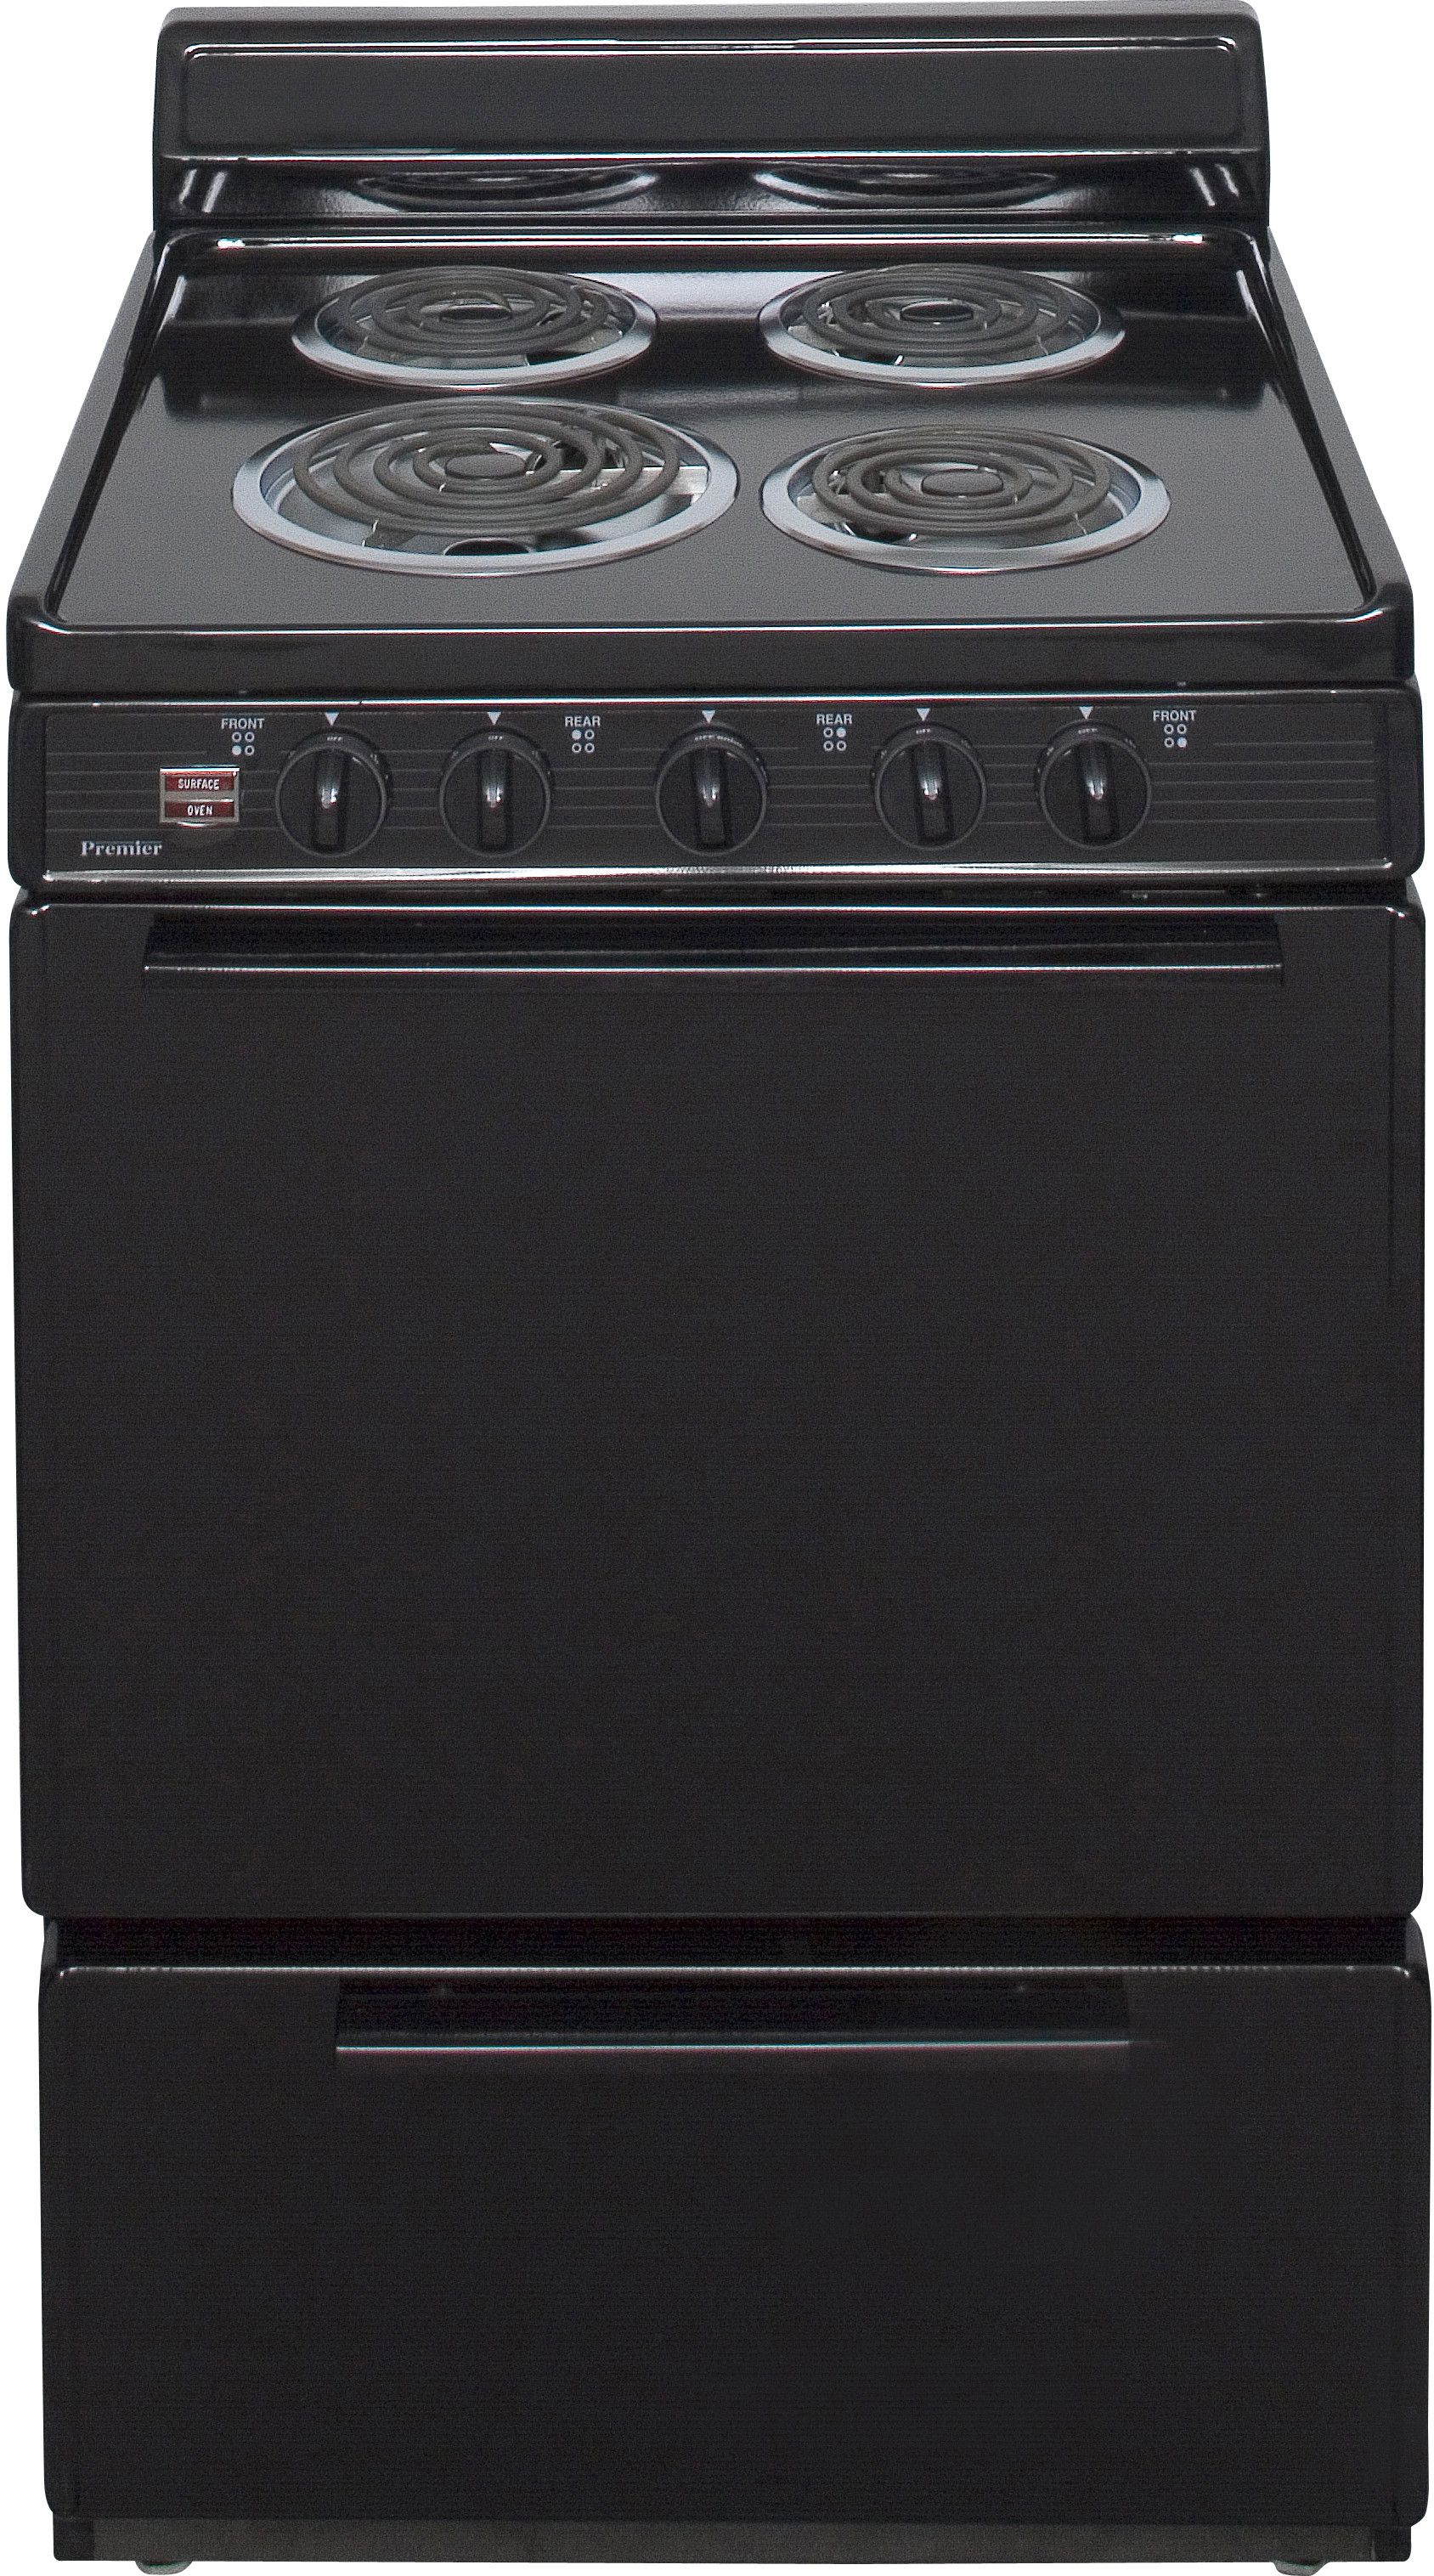 Premier ECK100BP 24 Inch Freestanding Electric Range with 4 Coil Elements,  3.0 cu. ft. Capacity, Manual Clean, 2 Adjustable Oven Racks, ADA Compliant  and 4 ...